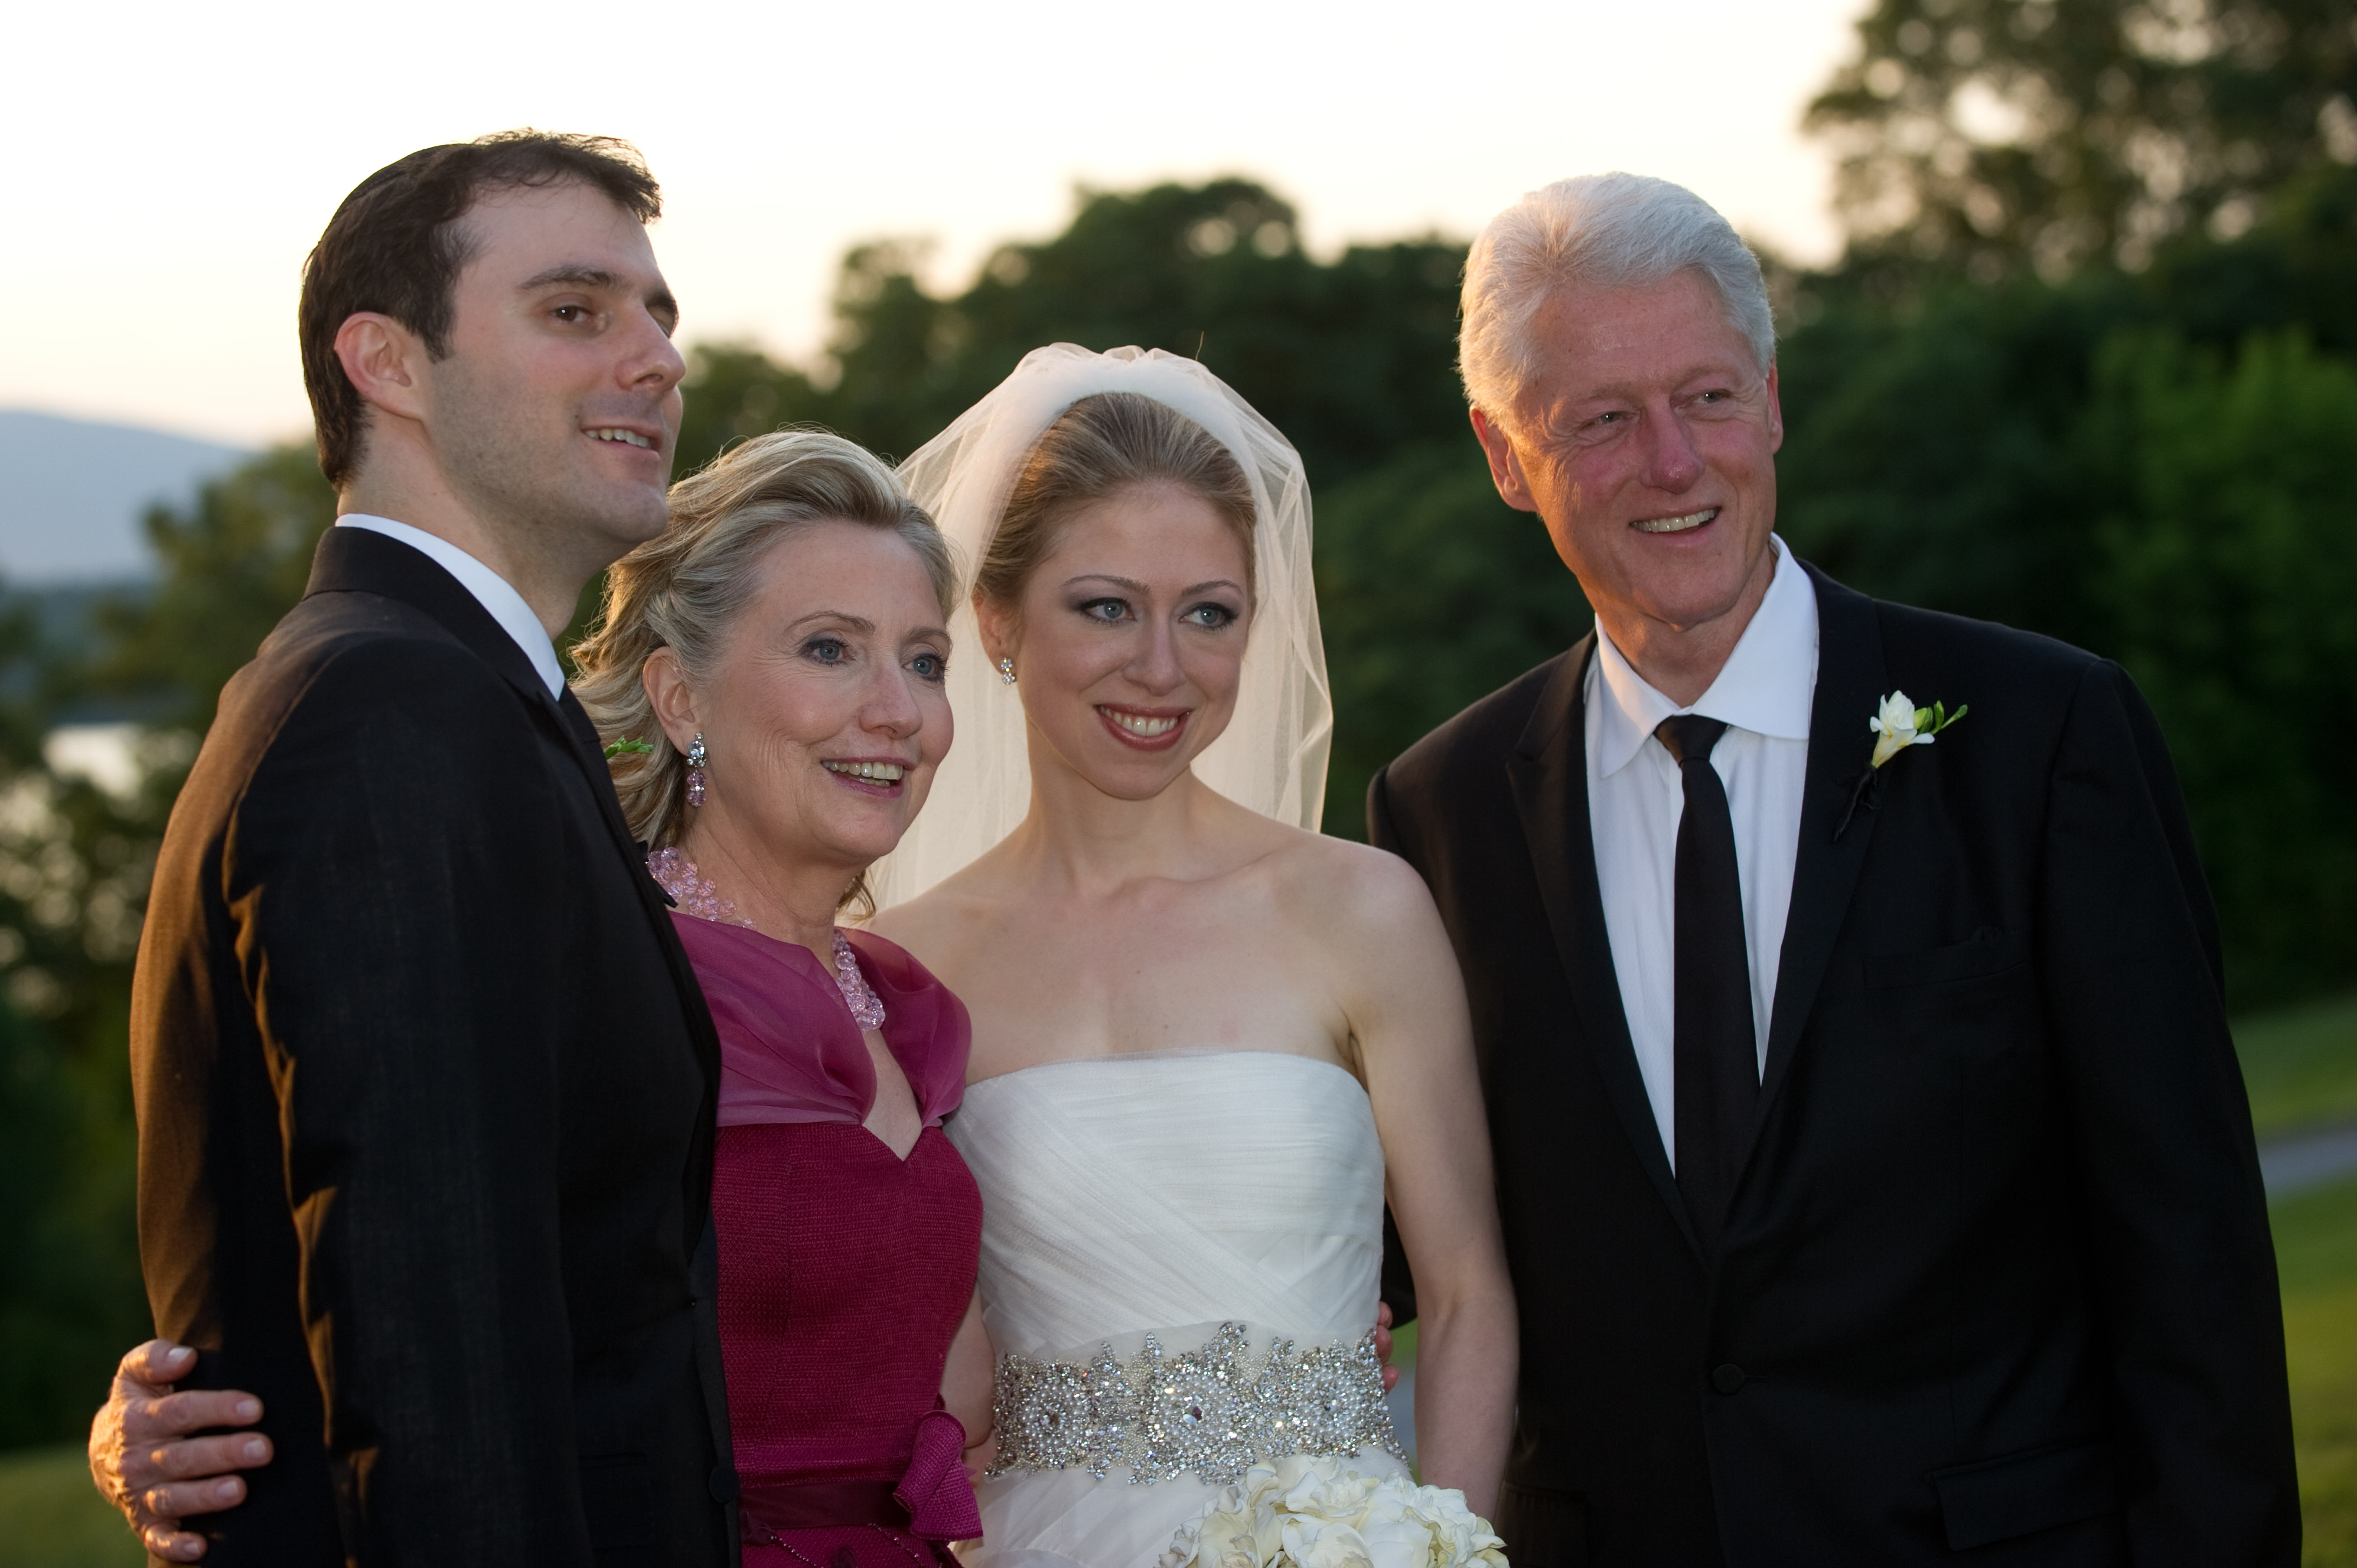 Chelsea Clinton Marries Marc Mezvinsky In Rhinebeck, New York